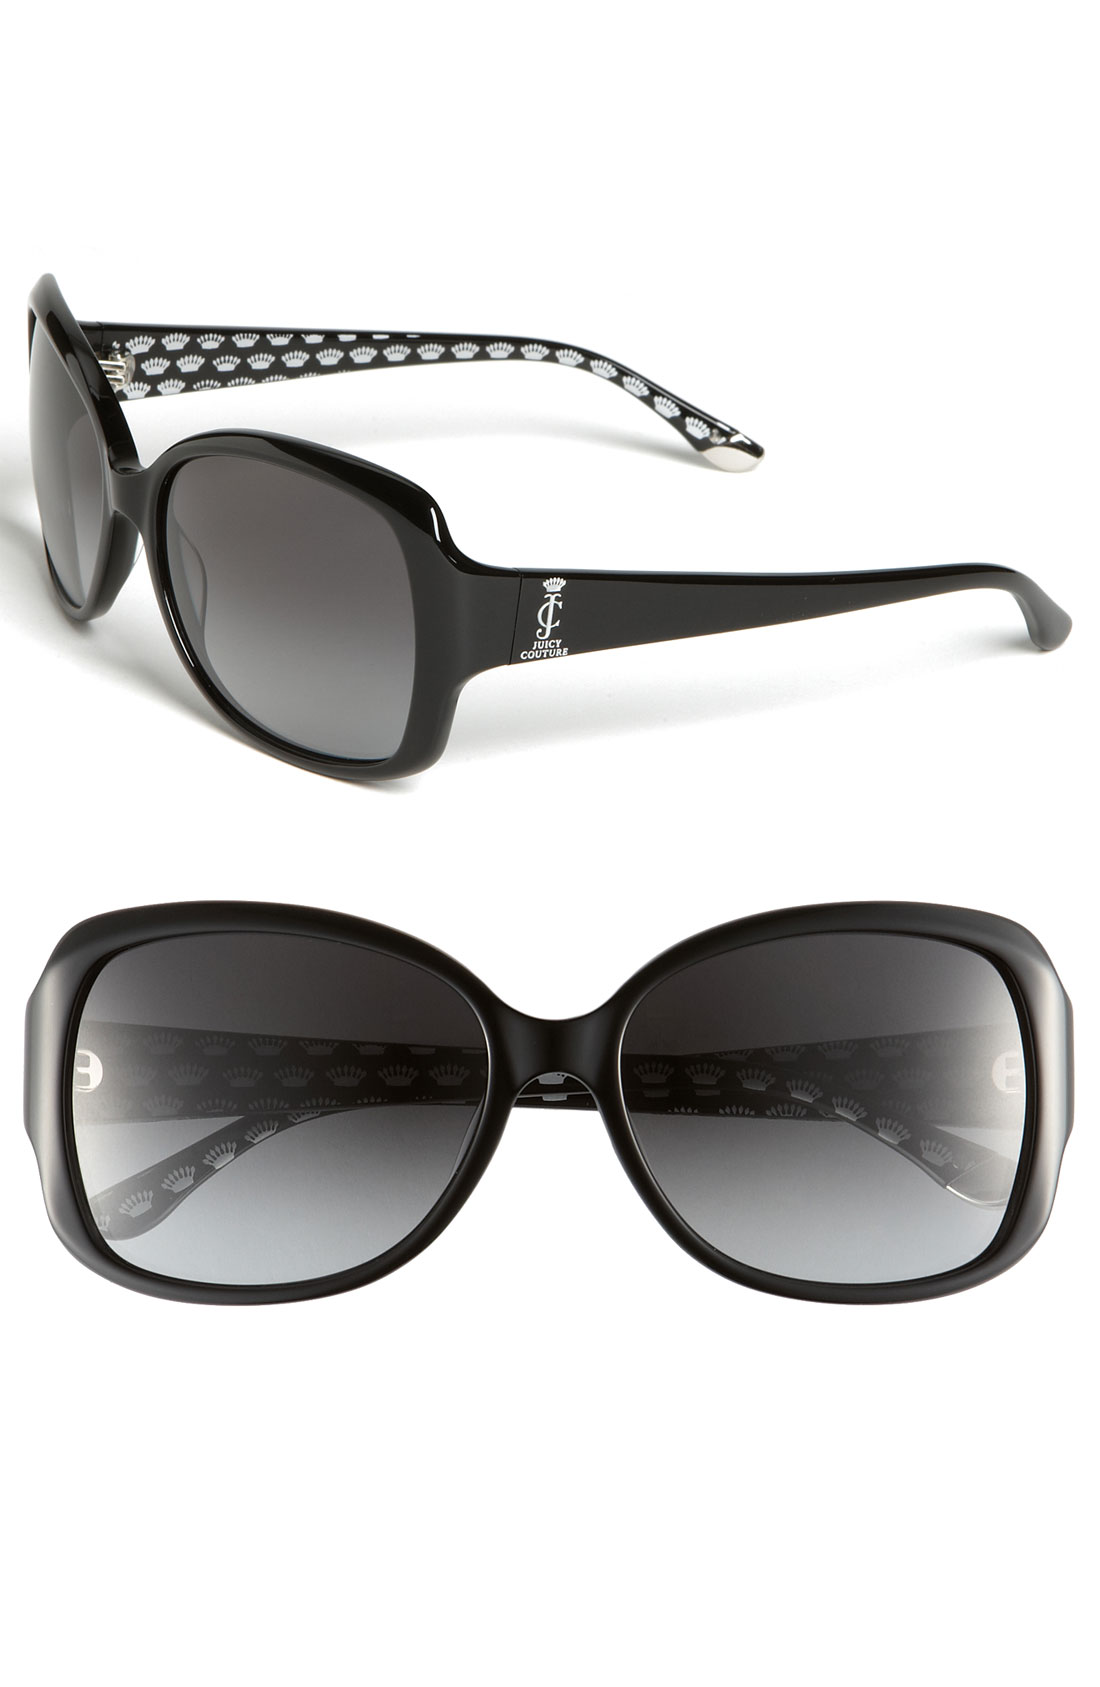 Juicy Couture Sunglasses in Black   Lyst